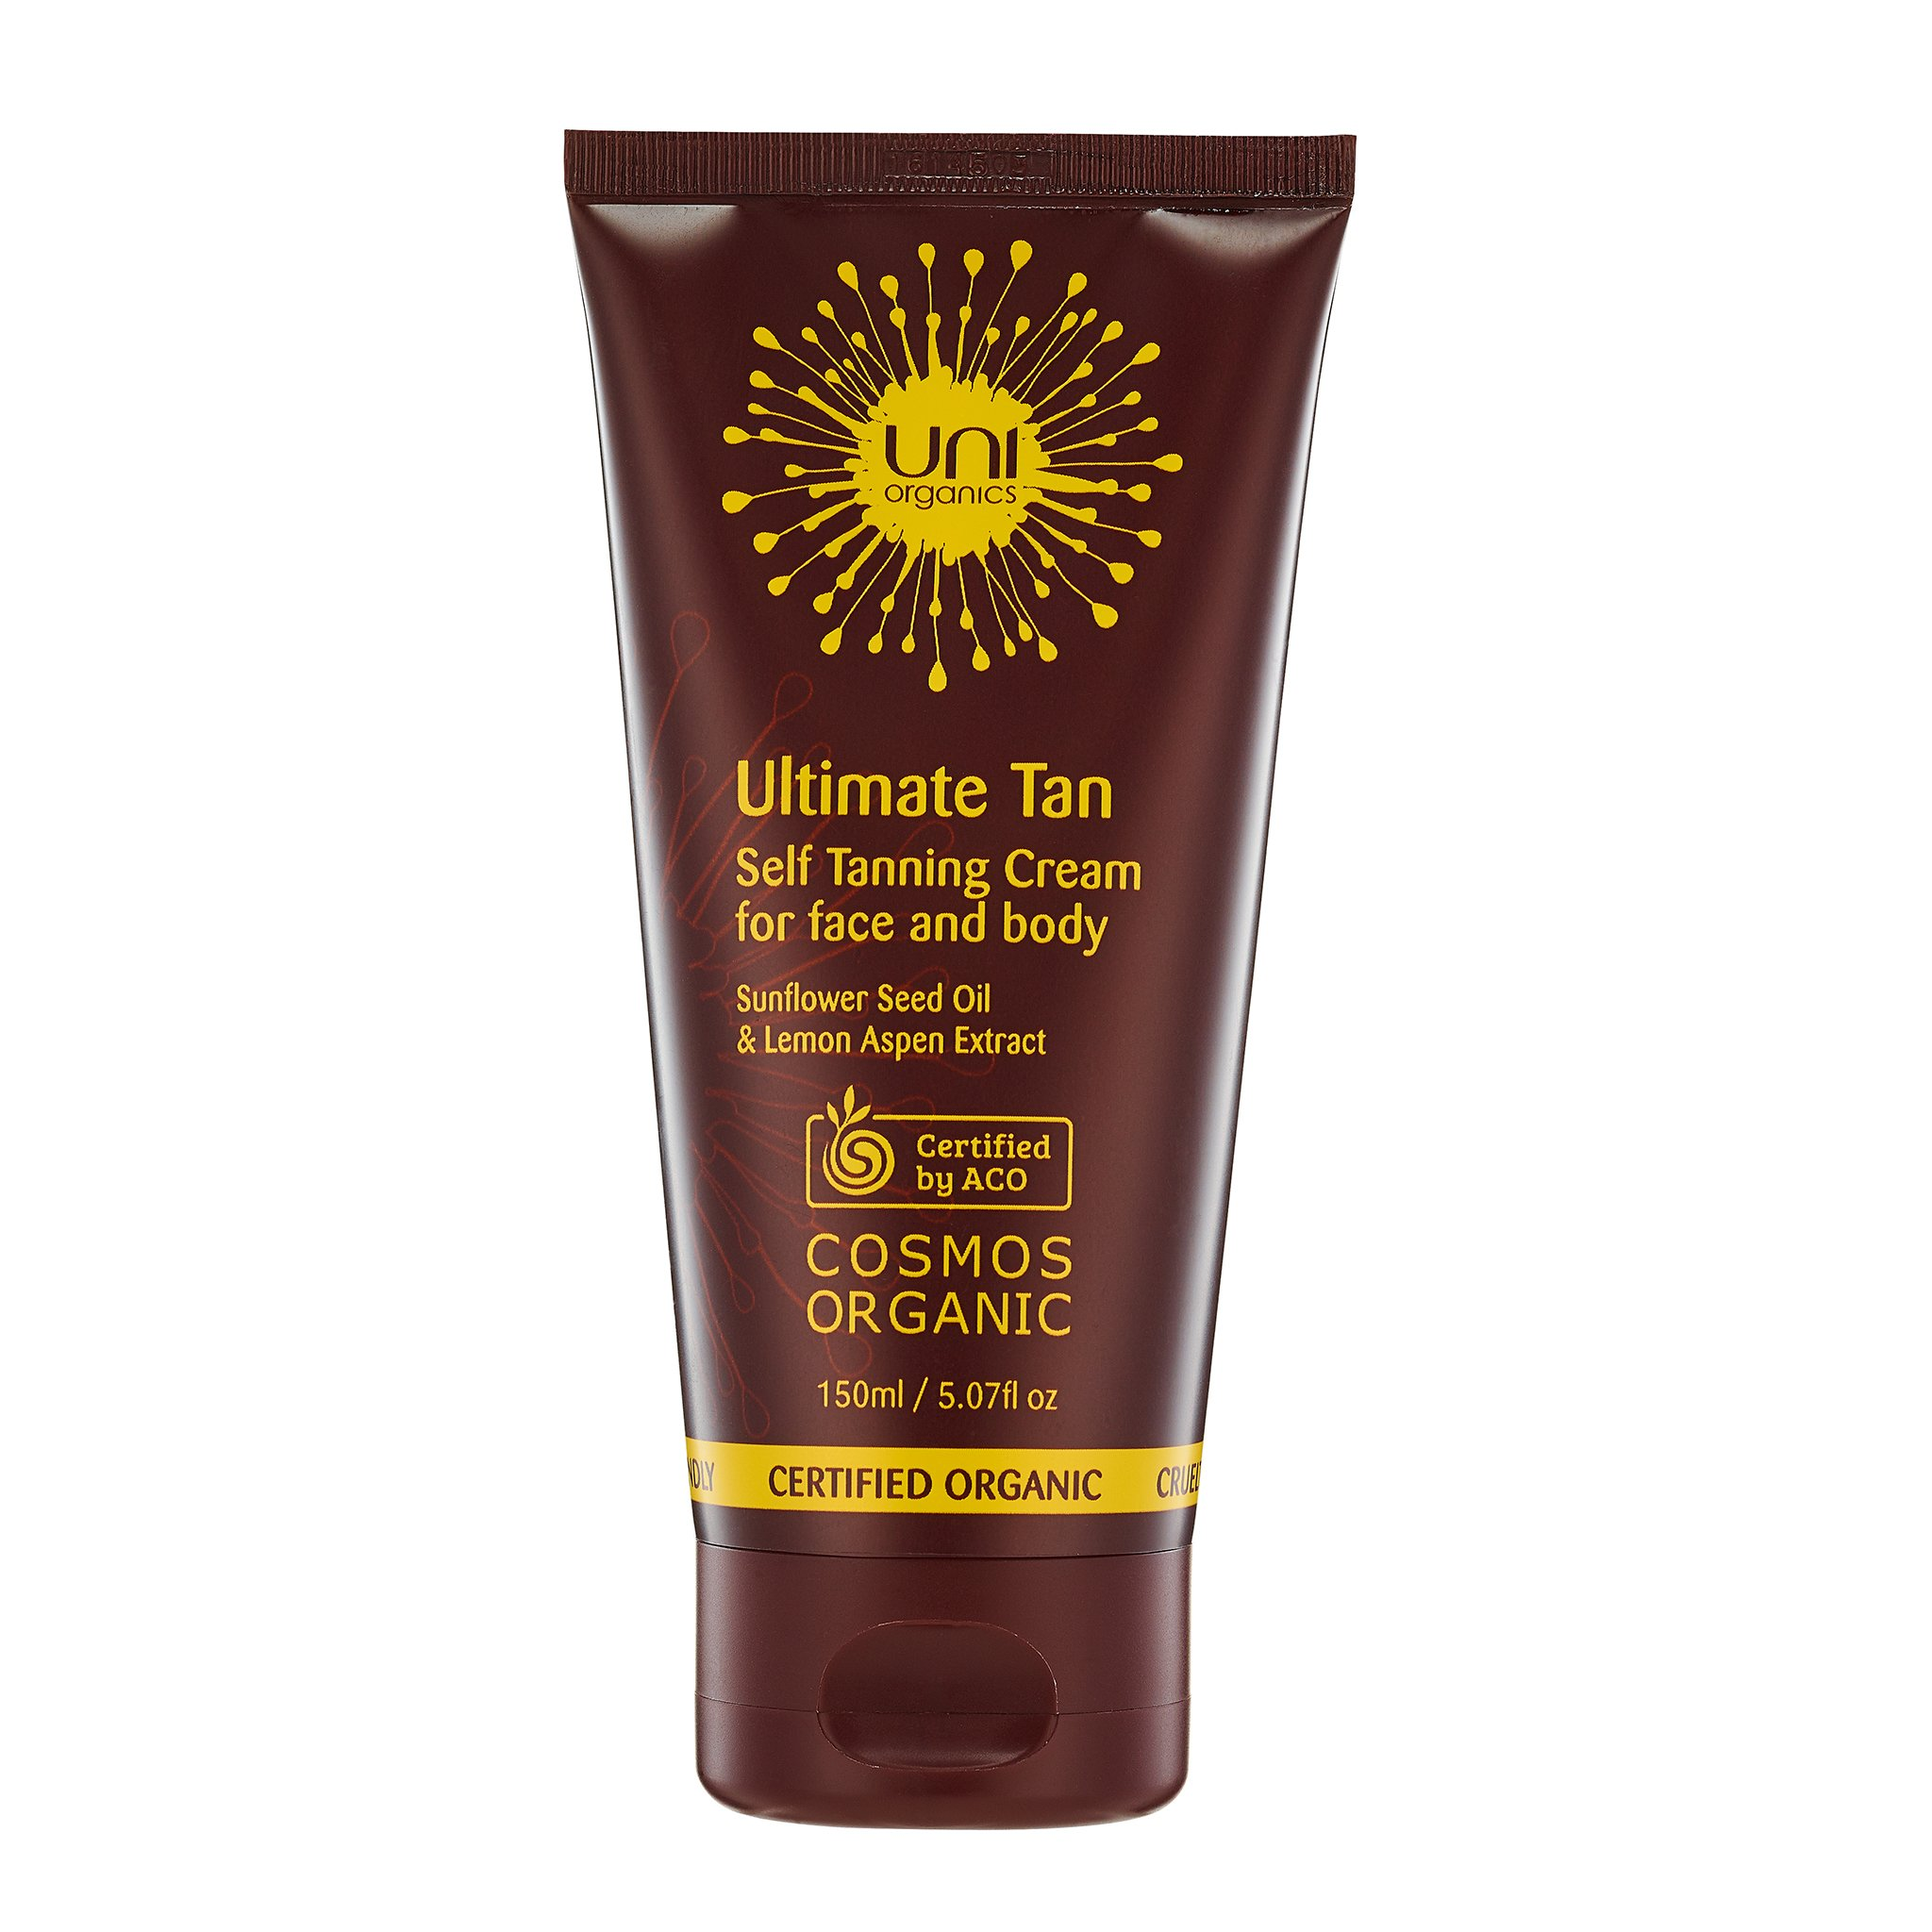 Certified Organic Anti-Aging Self Tanning Lotion For Face & Body - Buildable Self Tan Medium to Dark - Reduces Wrinkles and Fine Line, Deep Hydration with Sunflower Seed Oil by Uni Organics